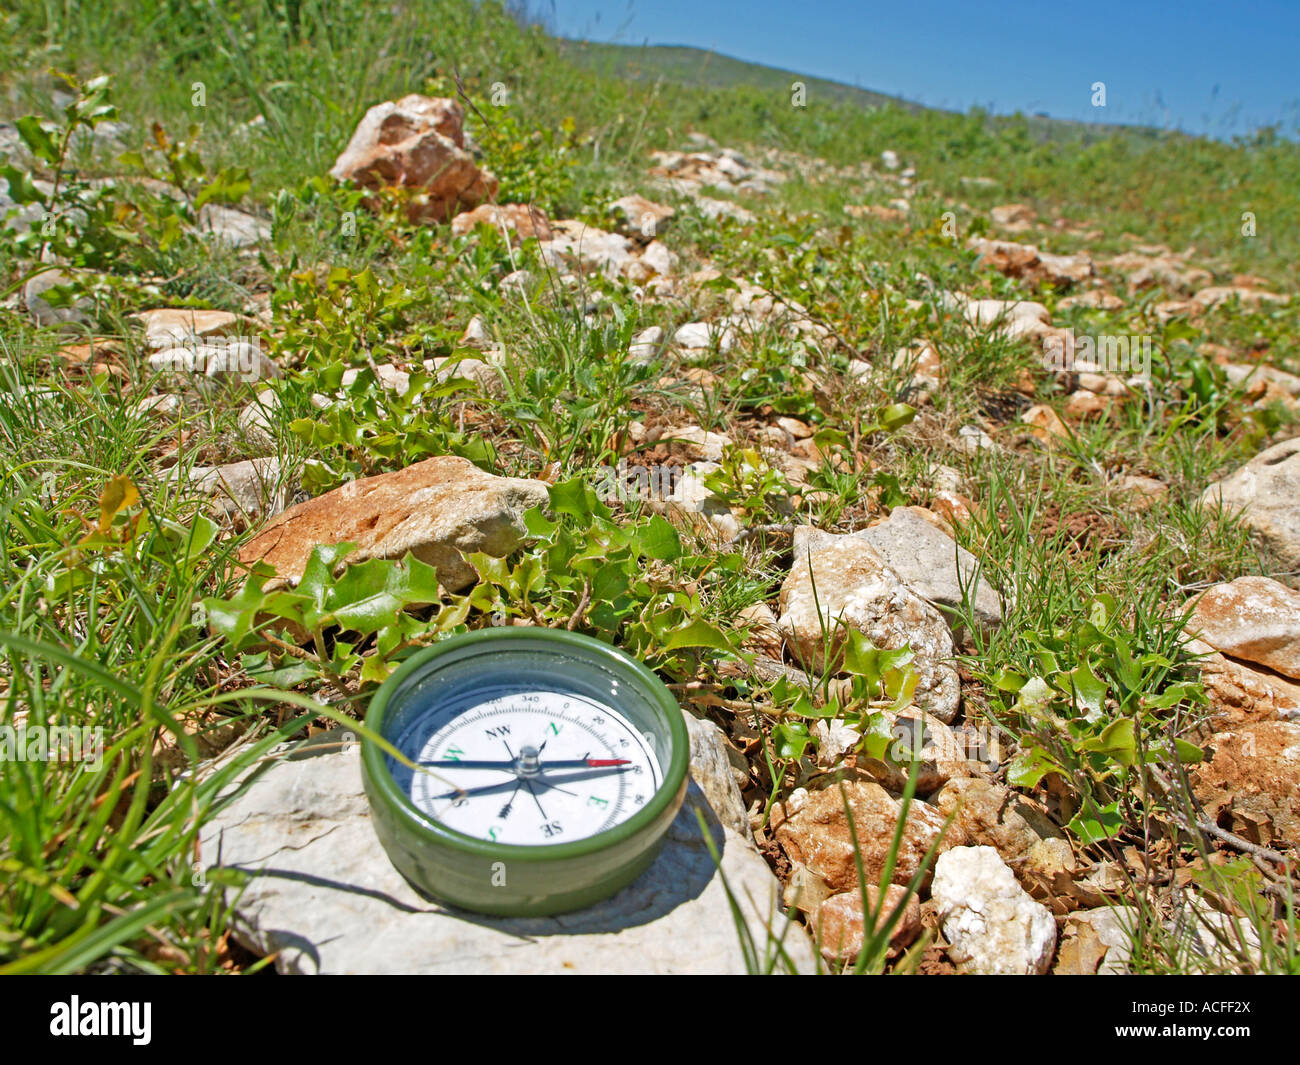 compass on the ground tracking hiking in the nature controlling the orientation with a compass - Stock Image